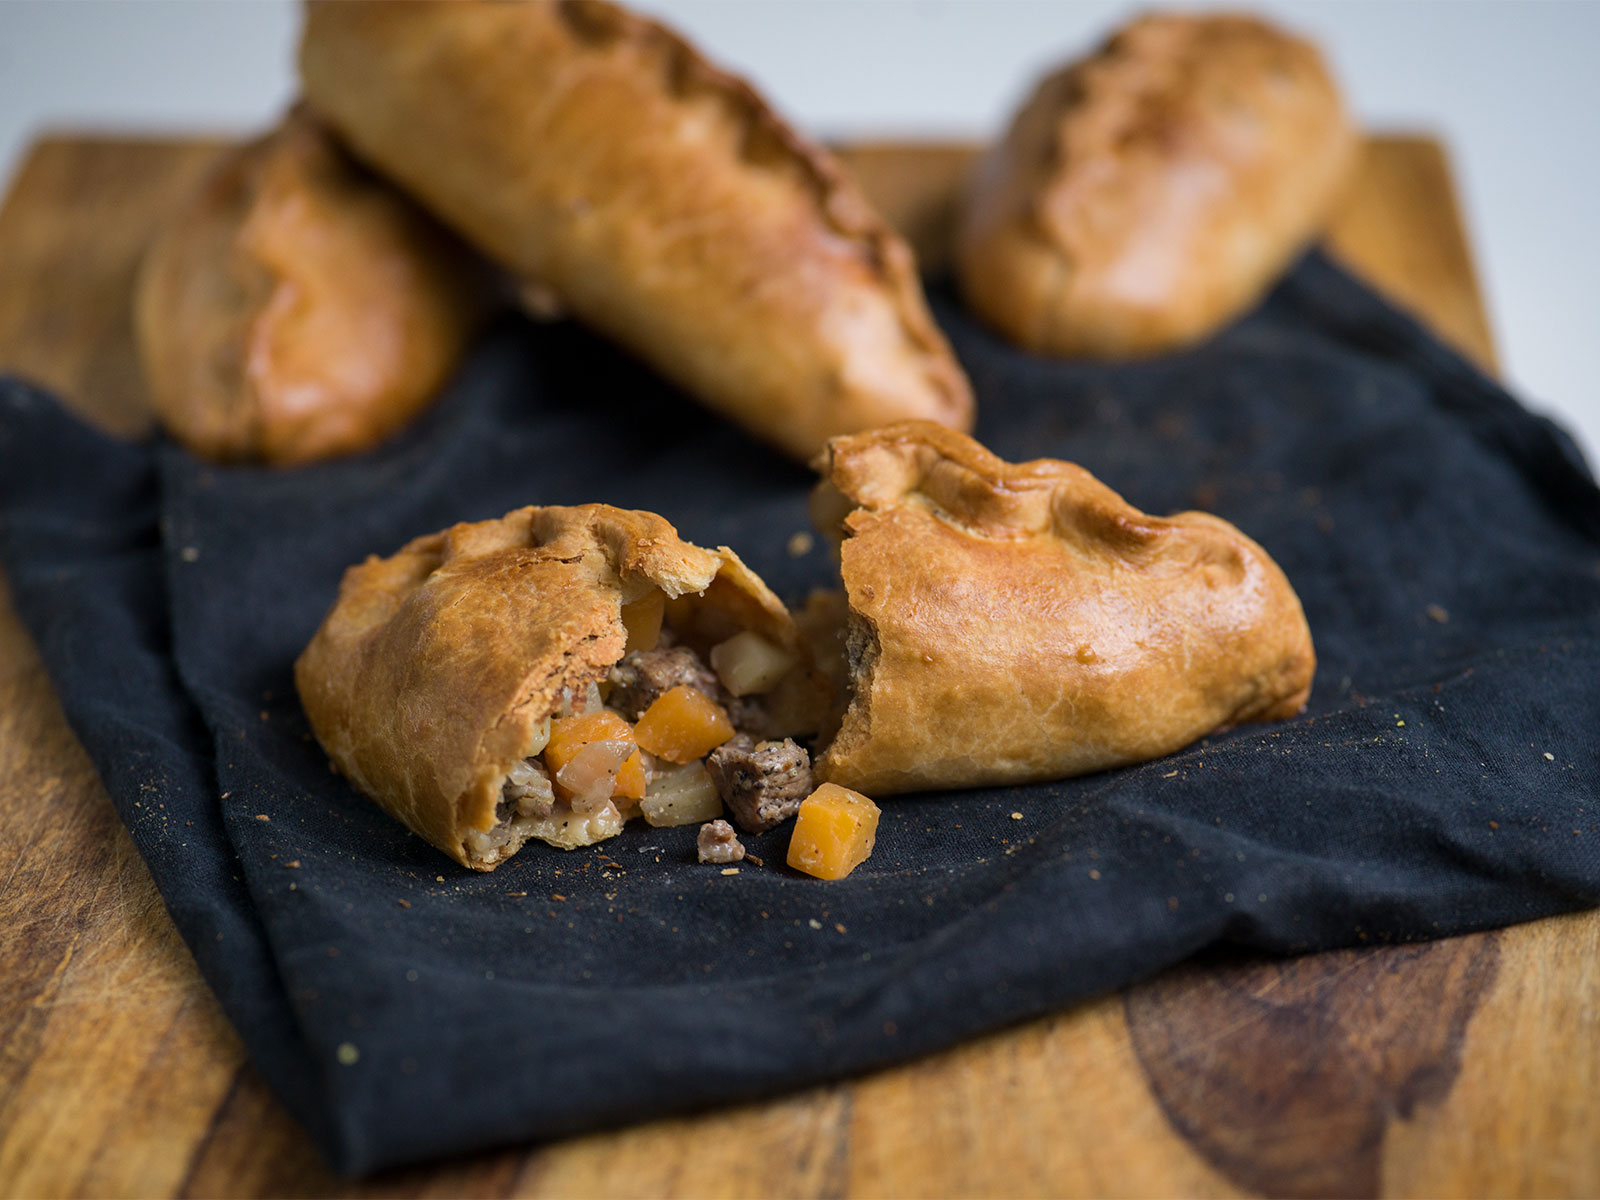 Flaky, golden pastry wrapped around melt-in-the-mouth beef and vegetables | Cornish Pasty